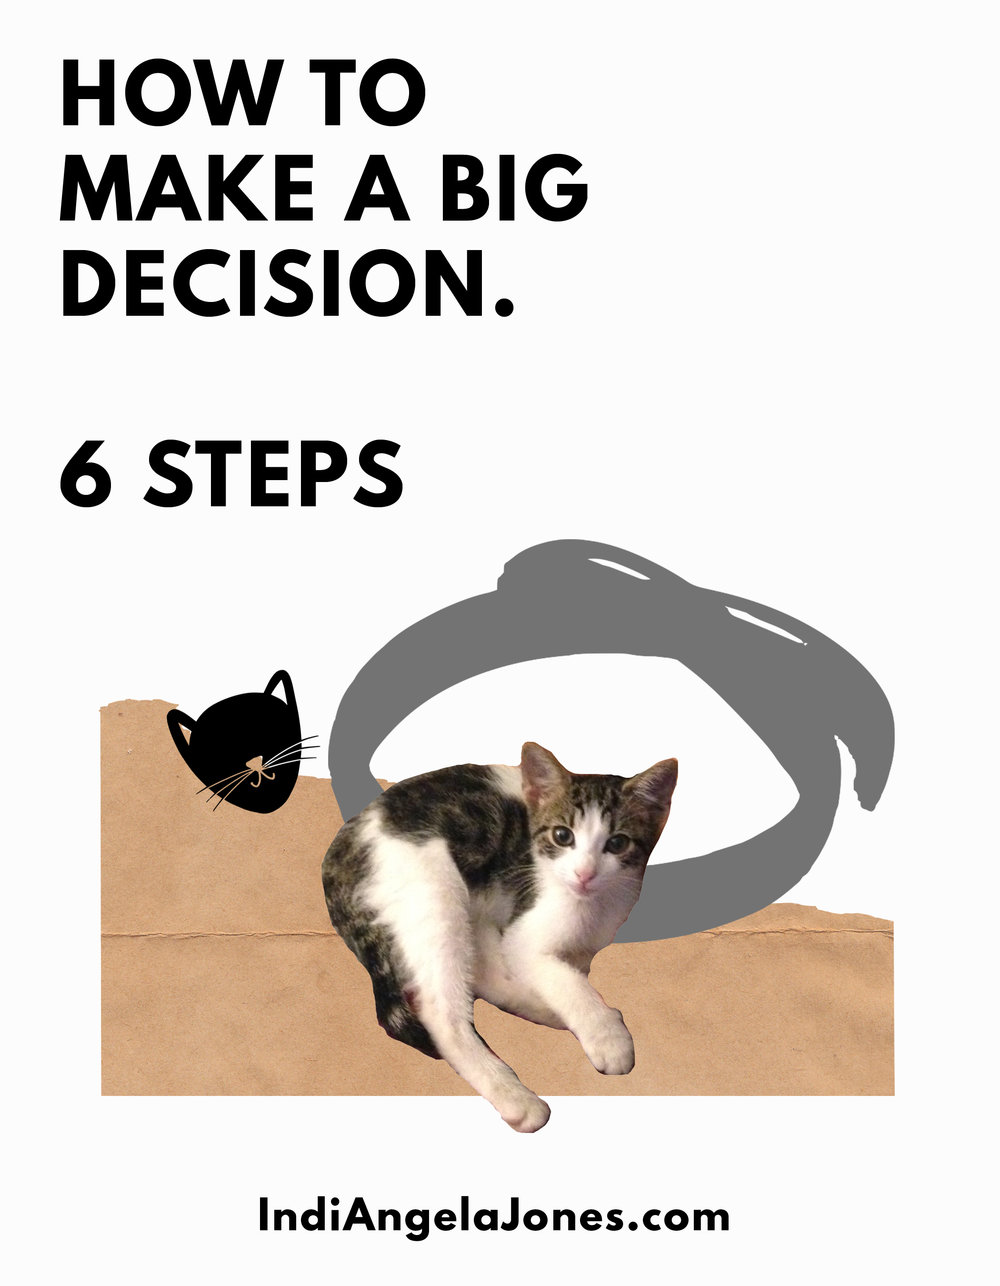 How to make a big decision.